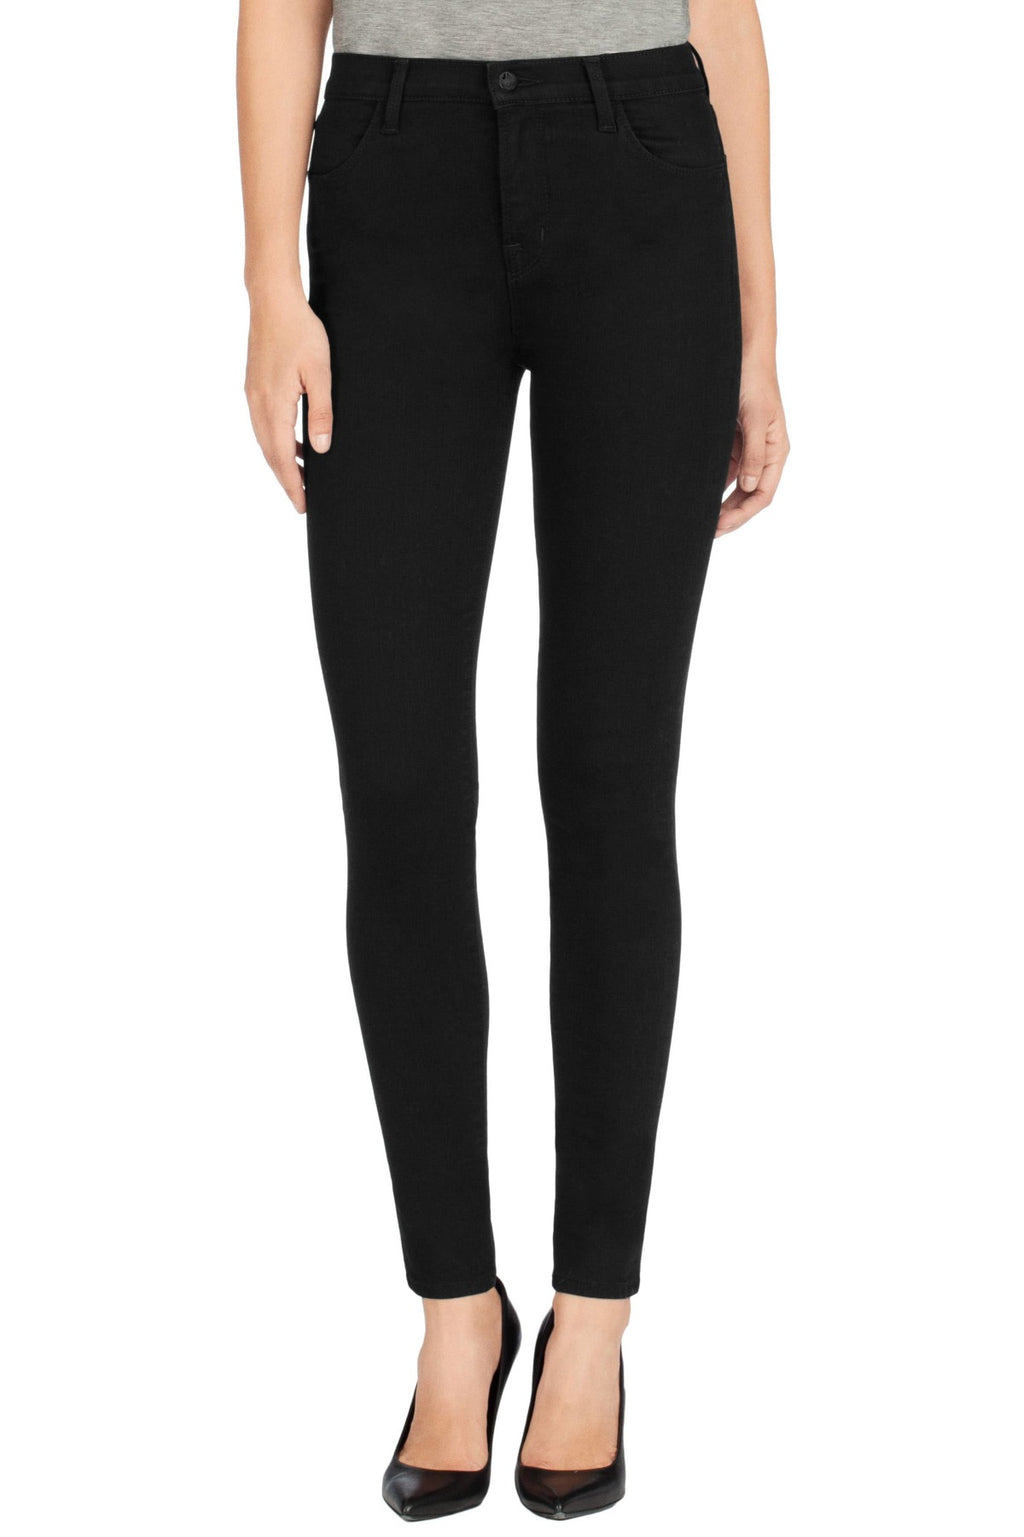 J BRAND - Maria High Rise Skinny Pants online at PAYA boutique